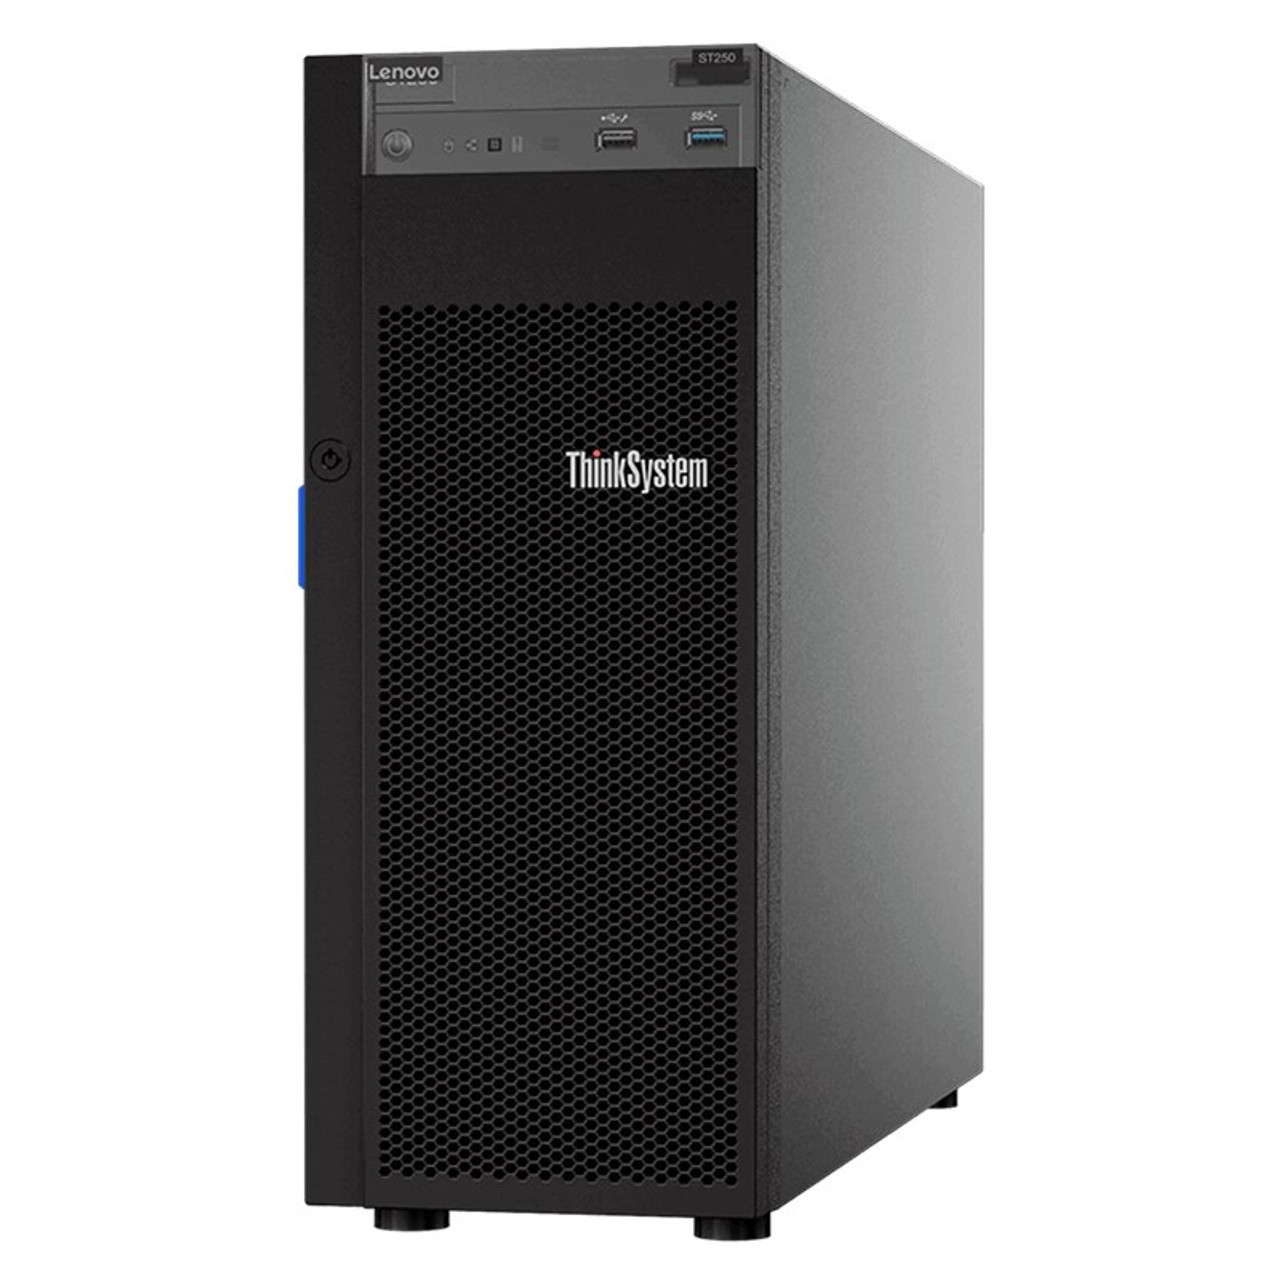 Image for Lenovo ThinkSystem ST250 Tower Server Xeon E-2124G 8GB(1/4) 3.5in HS(0/8) NO OS CX Computer Superstore